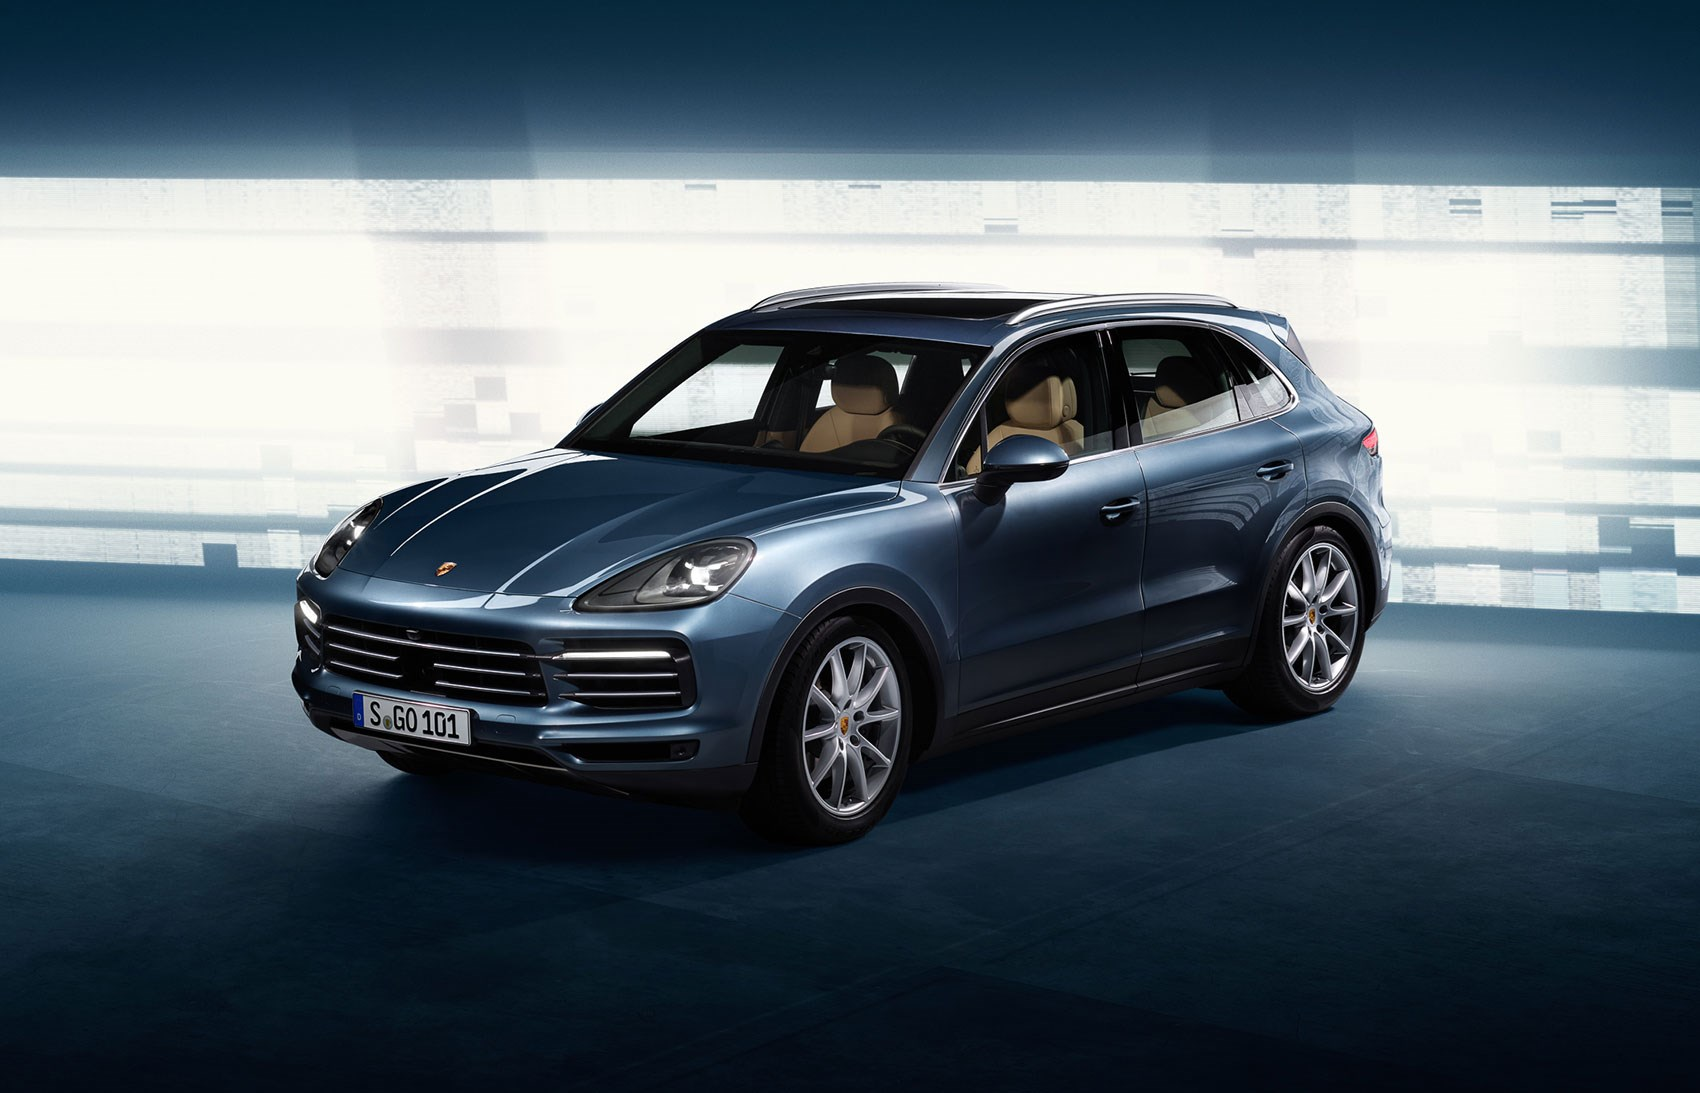 New Porsche Cayenne is here for 2018